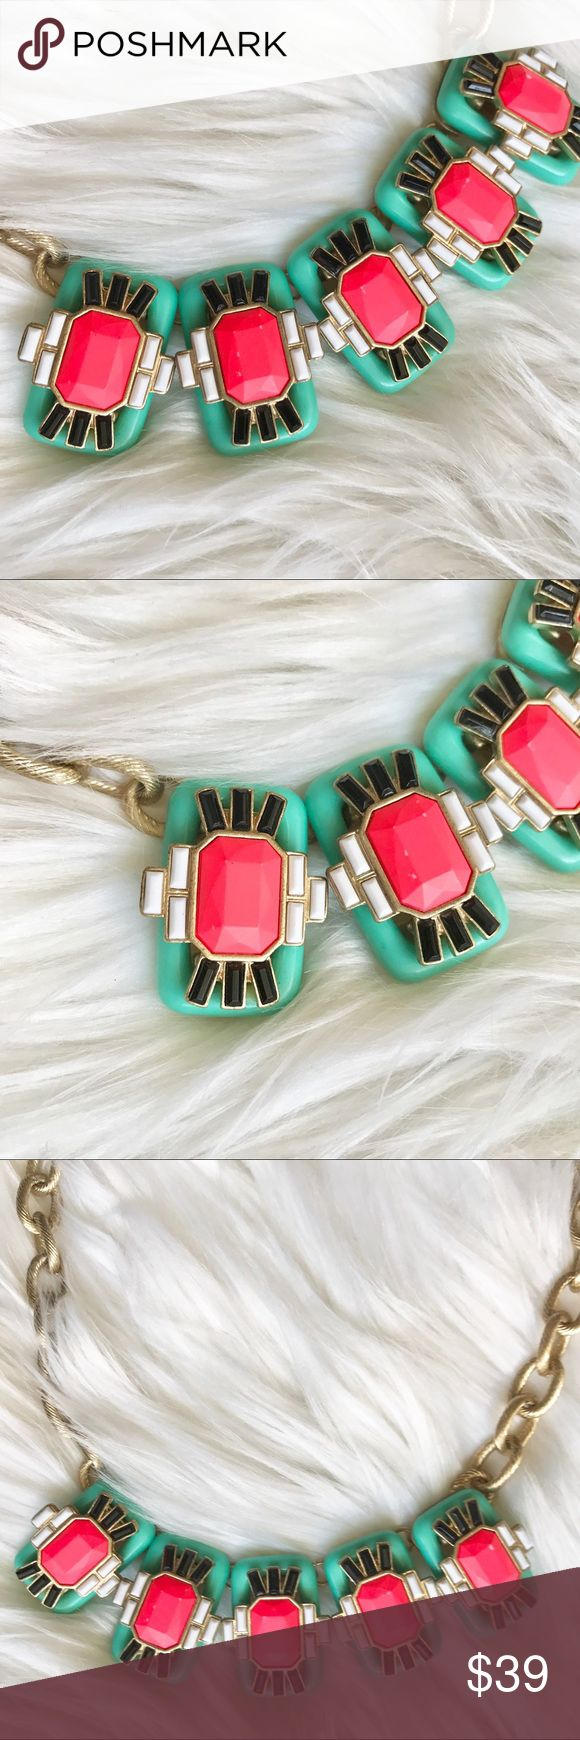 Awesome Embellished Neon Pink & Teal Necklace Eye catching embellished necklace is ready to be worn this Season!🌷☀️ Grab her while you can!!🙌🏼 Jewelry Necklaces